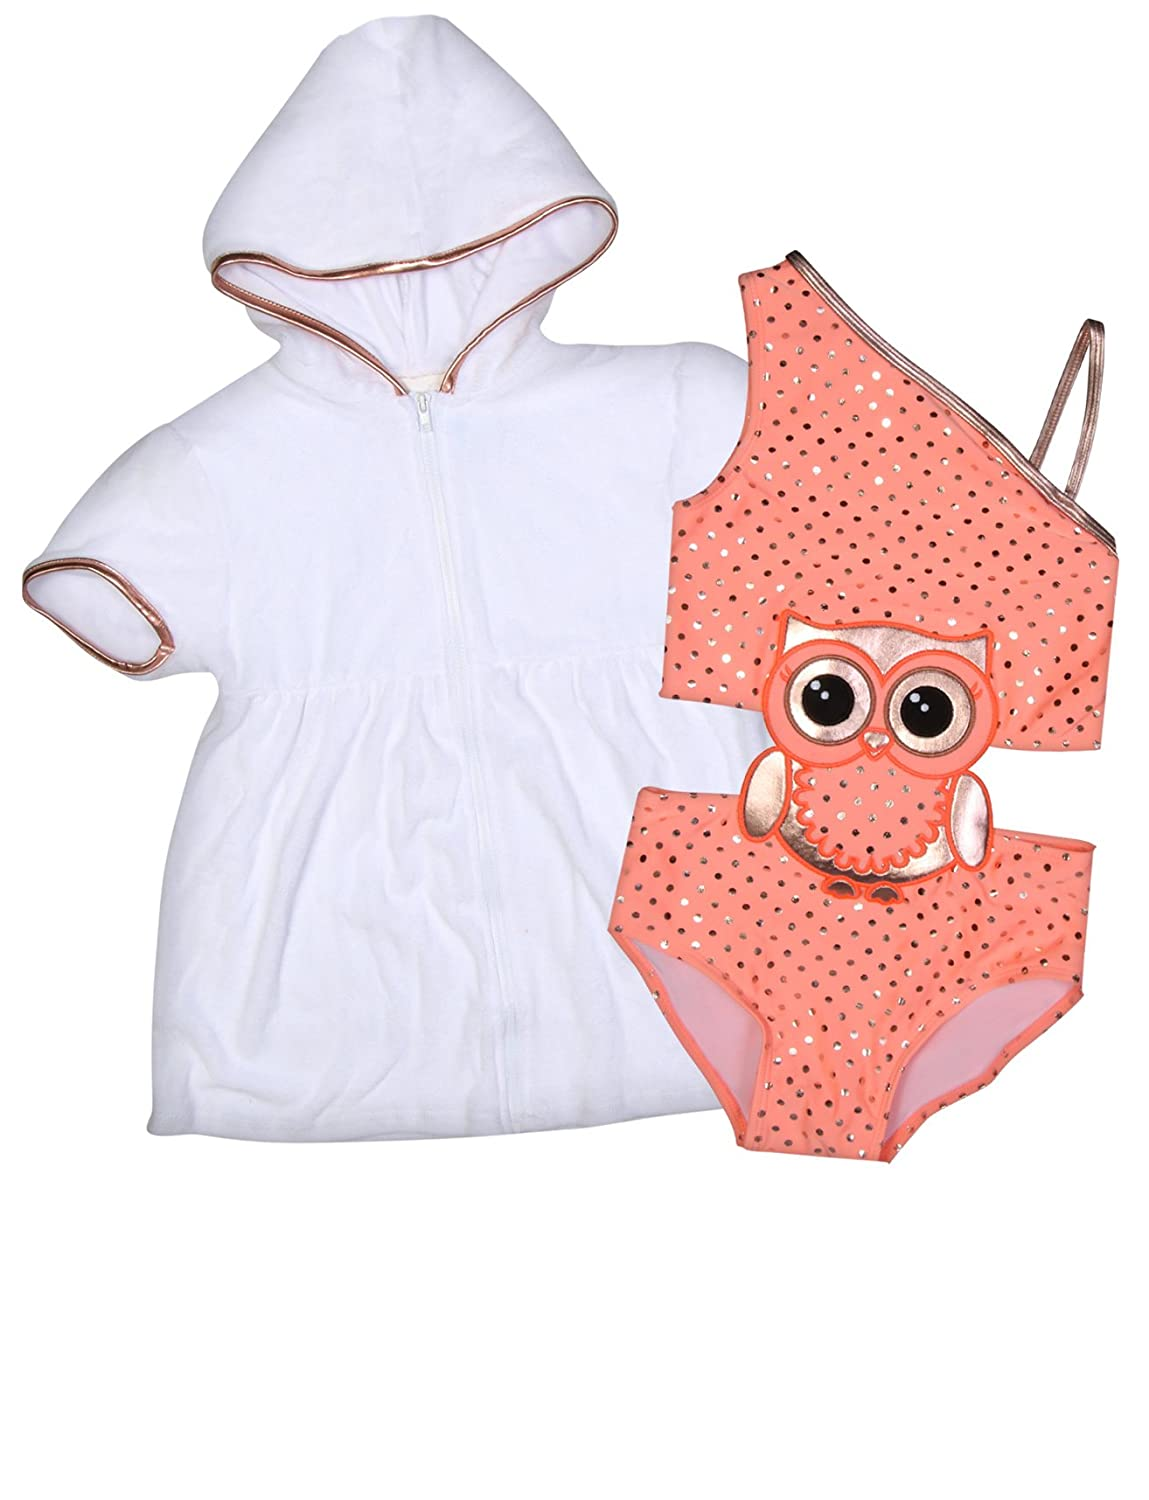 78ae4814ccd55 Adorable One-Piece Bathing Suit Hooded Cover Up for Extra Warmth After  Swimming